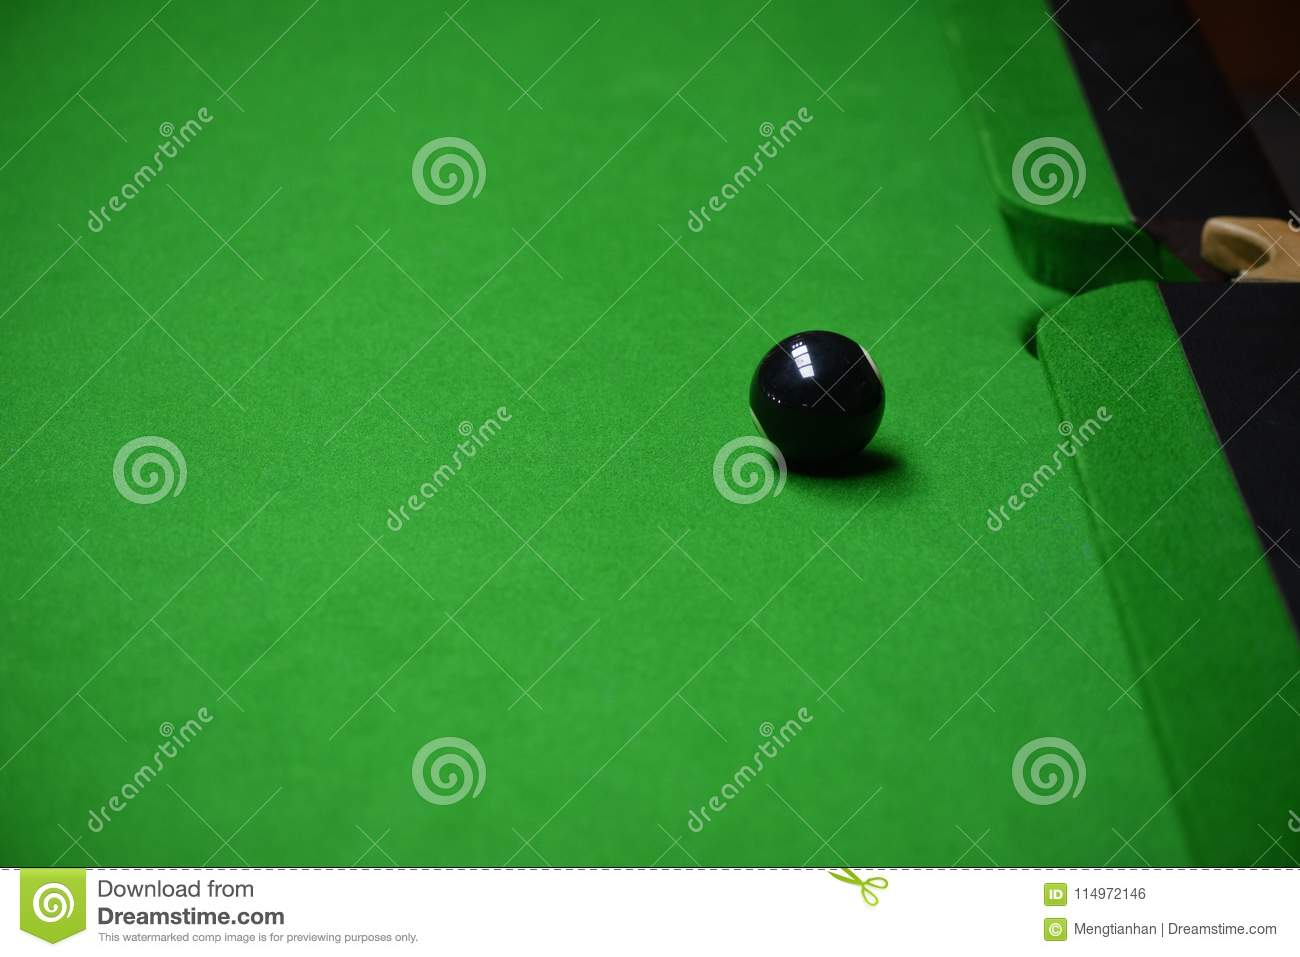 Billiards Are On The Billiard Table Stock Photo Image Of Table - How to put a pool table together